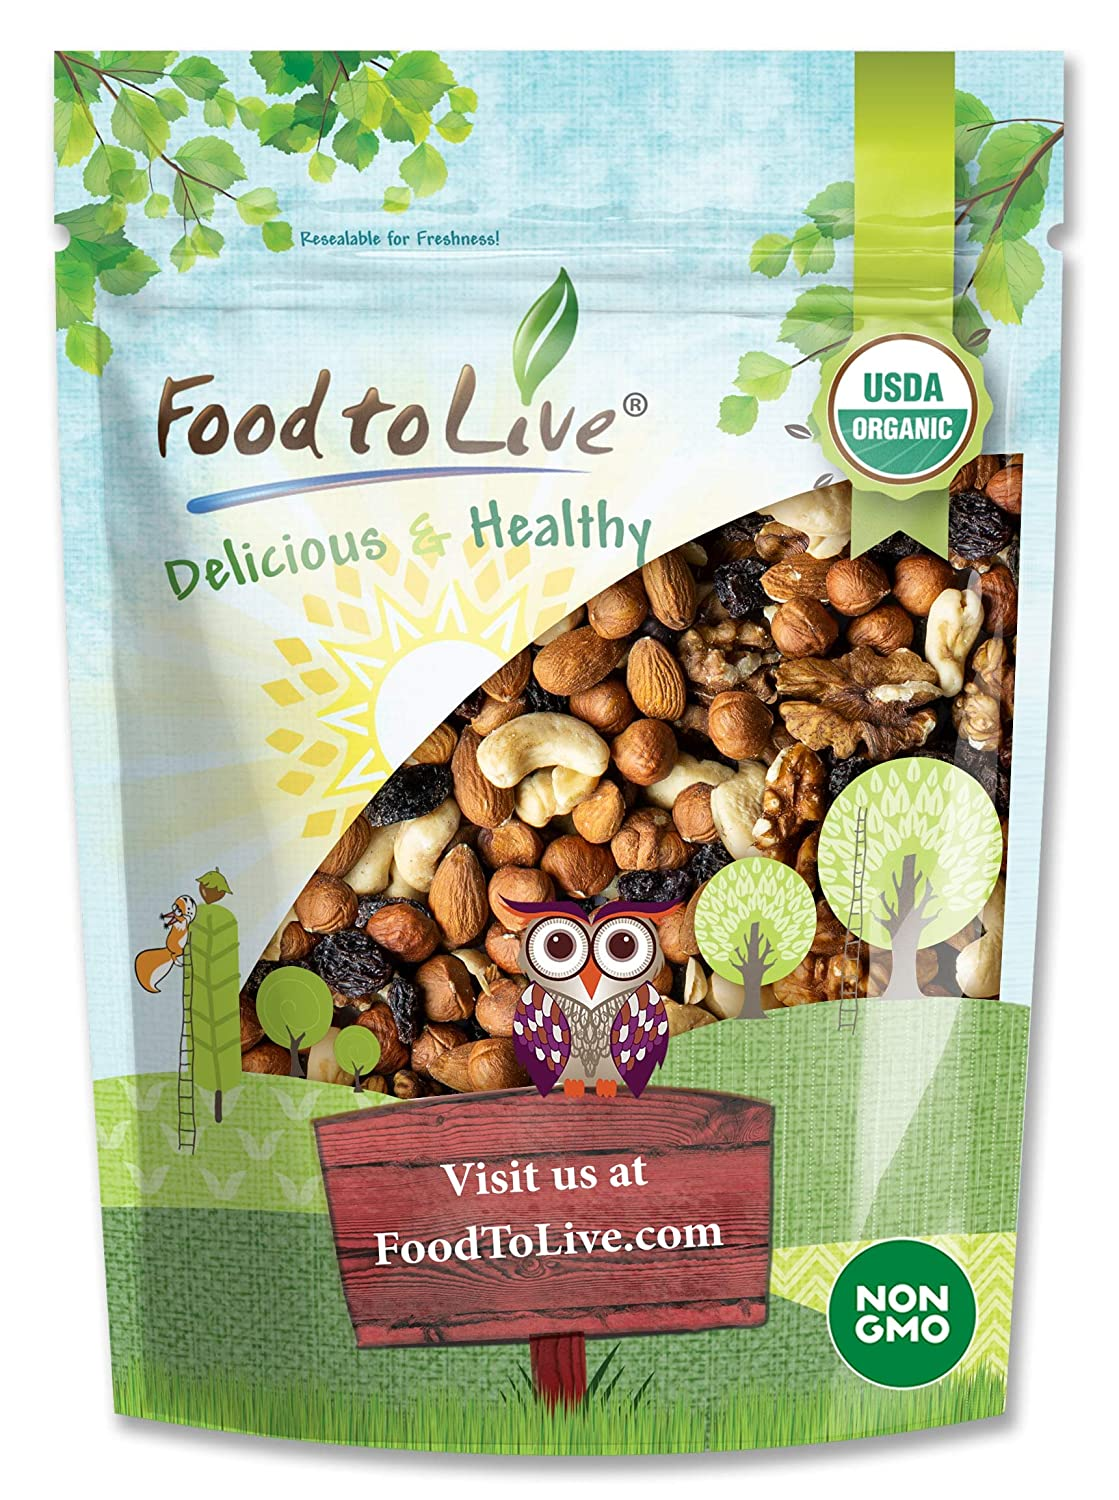 Organic Go Raw Trail Mix, 2 Pounds - Raw and Non-GMO Snack Mix Contains Walnuts, Almonds, Cashews, Hazelnuts, and Raisins. Vegan Superfood, Kosher, No Added Sugar and Oil, Bulk